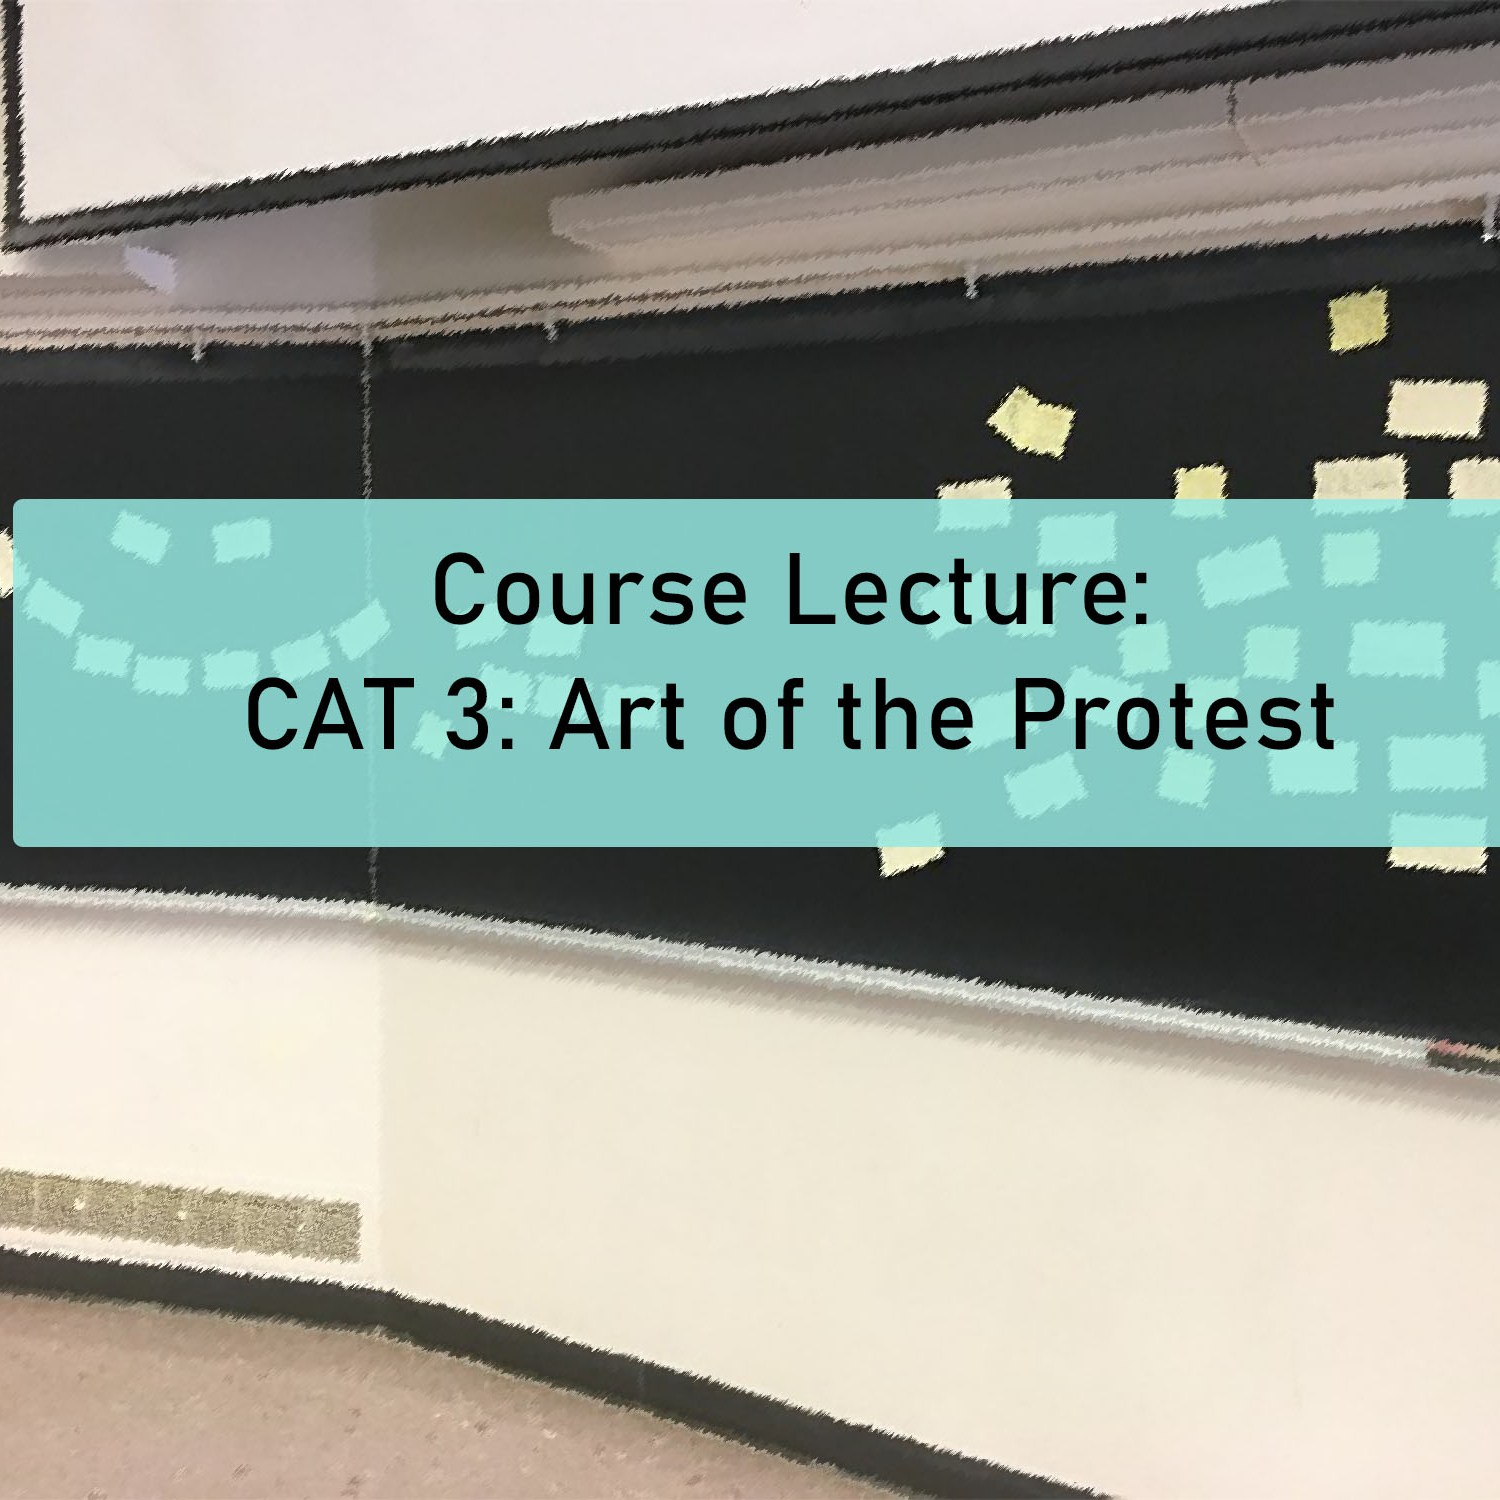 Course Lecture: CAT 3: Art of the Protest